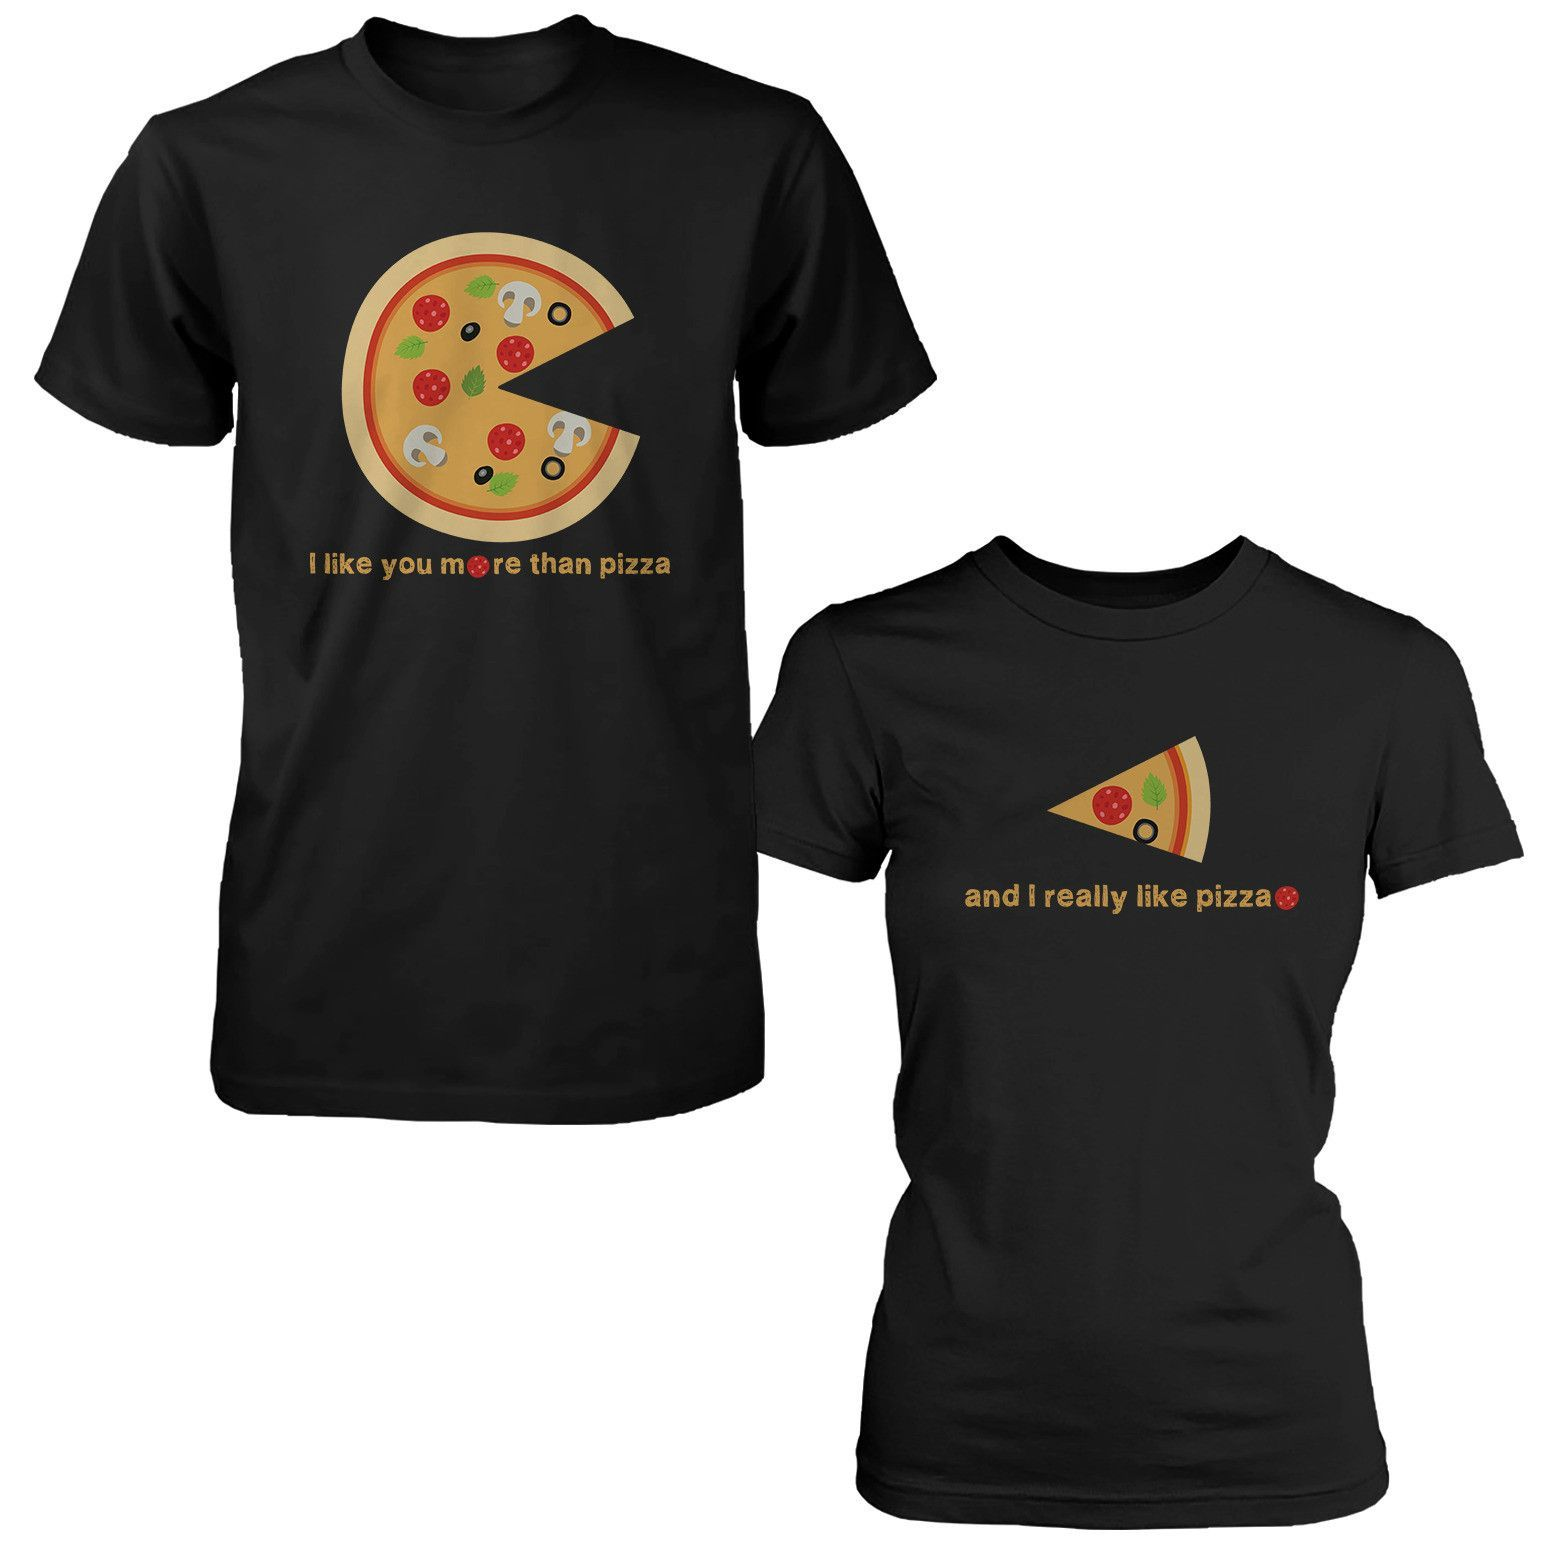 03bdd79f3796 Cute Matching Couple T-Shirts! Our Funny Couple Tee is Best gifts for  Wedding, Anniversary, Valentines Day, Christmas, And any other Speci